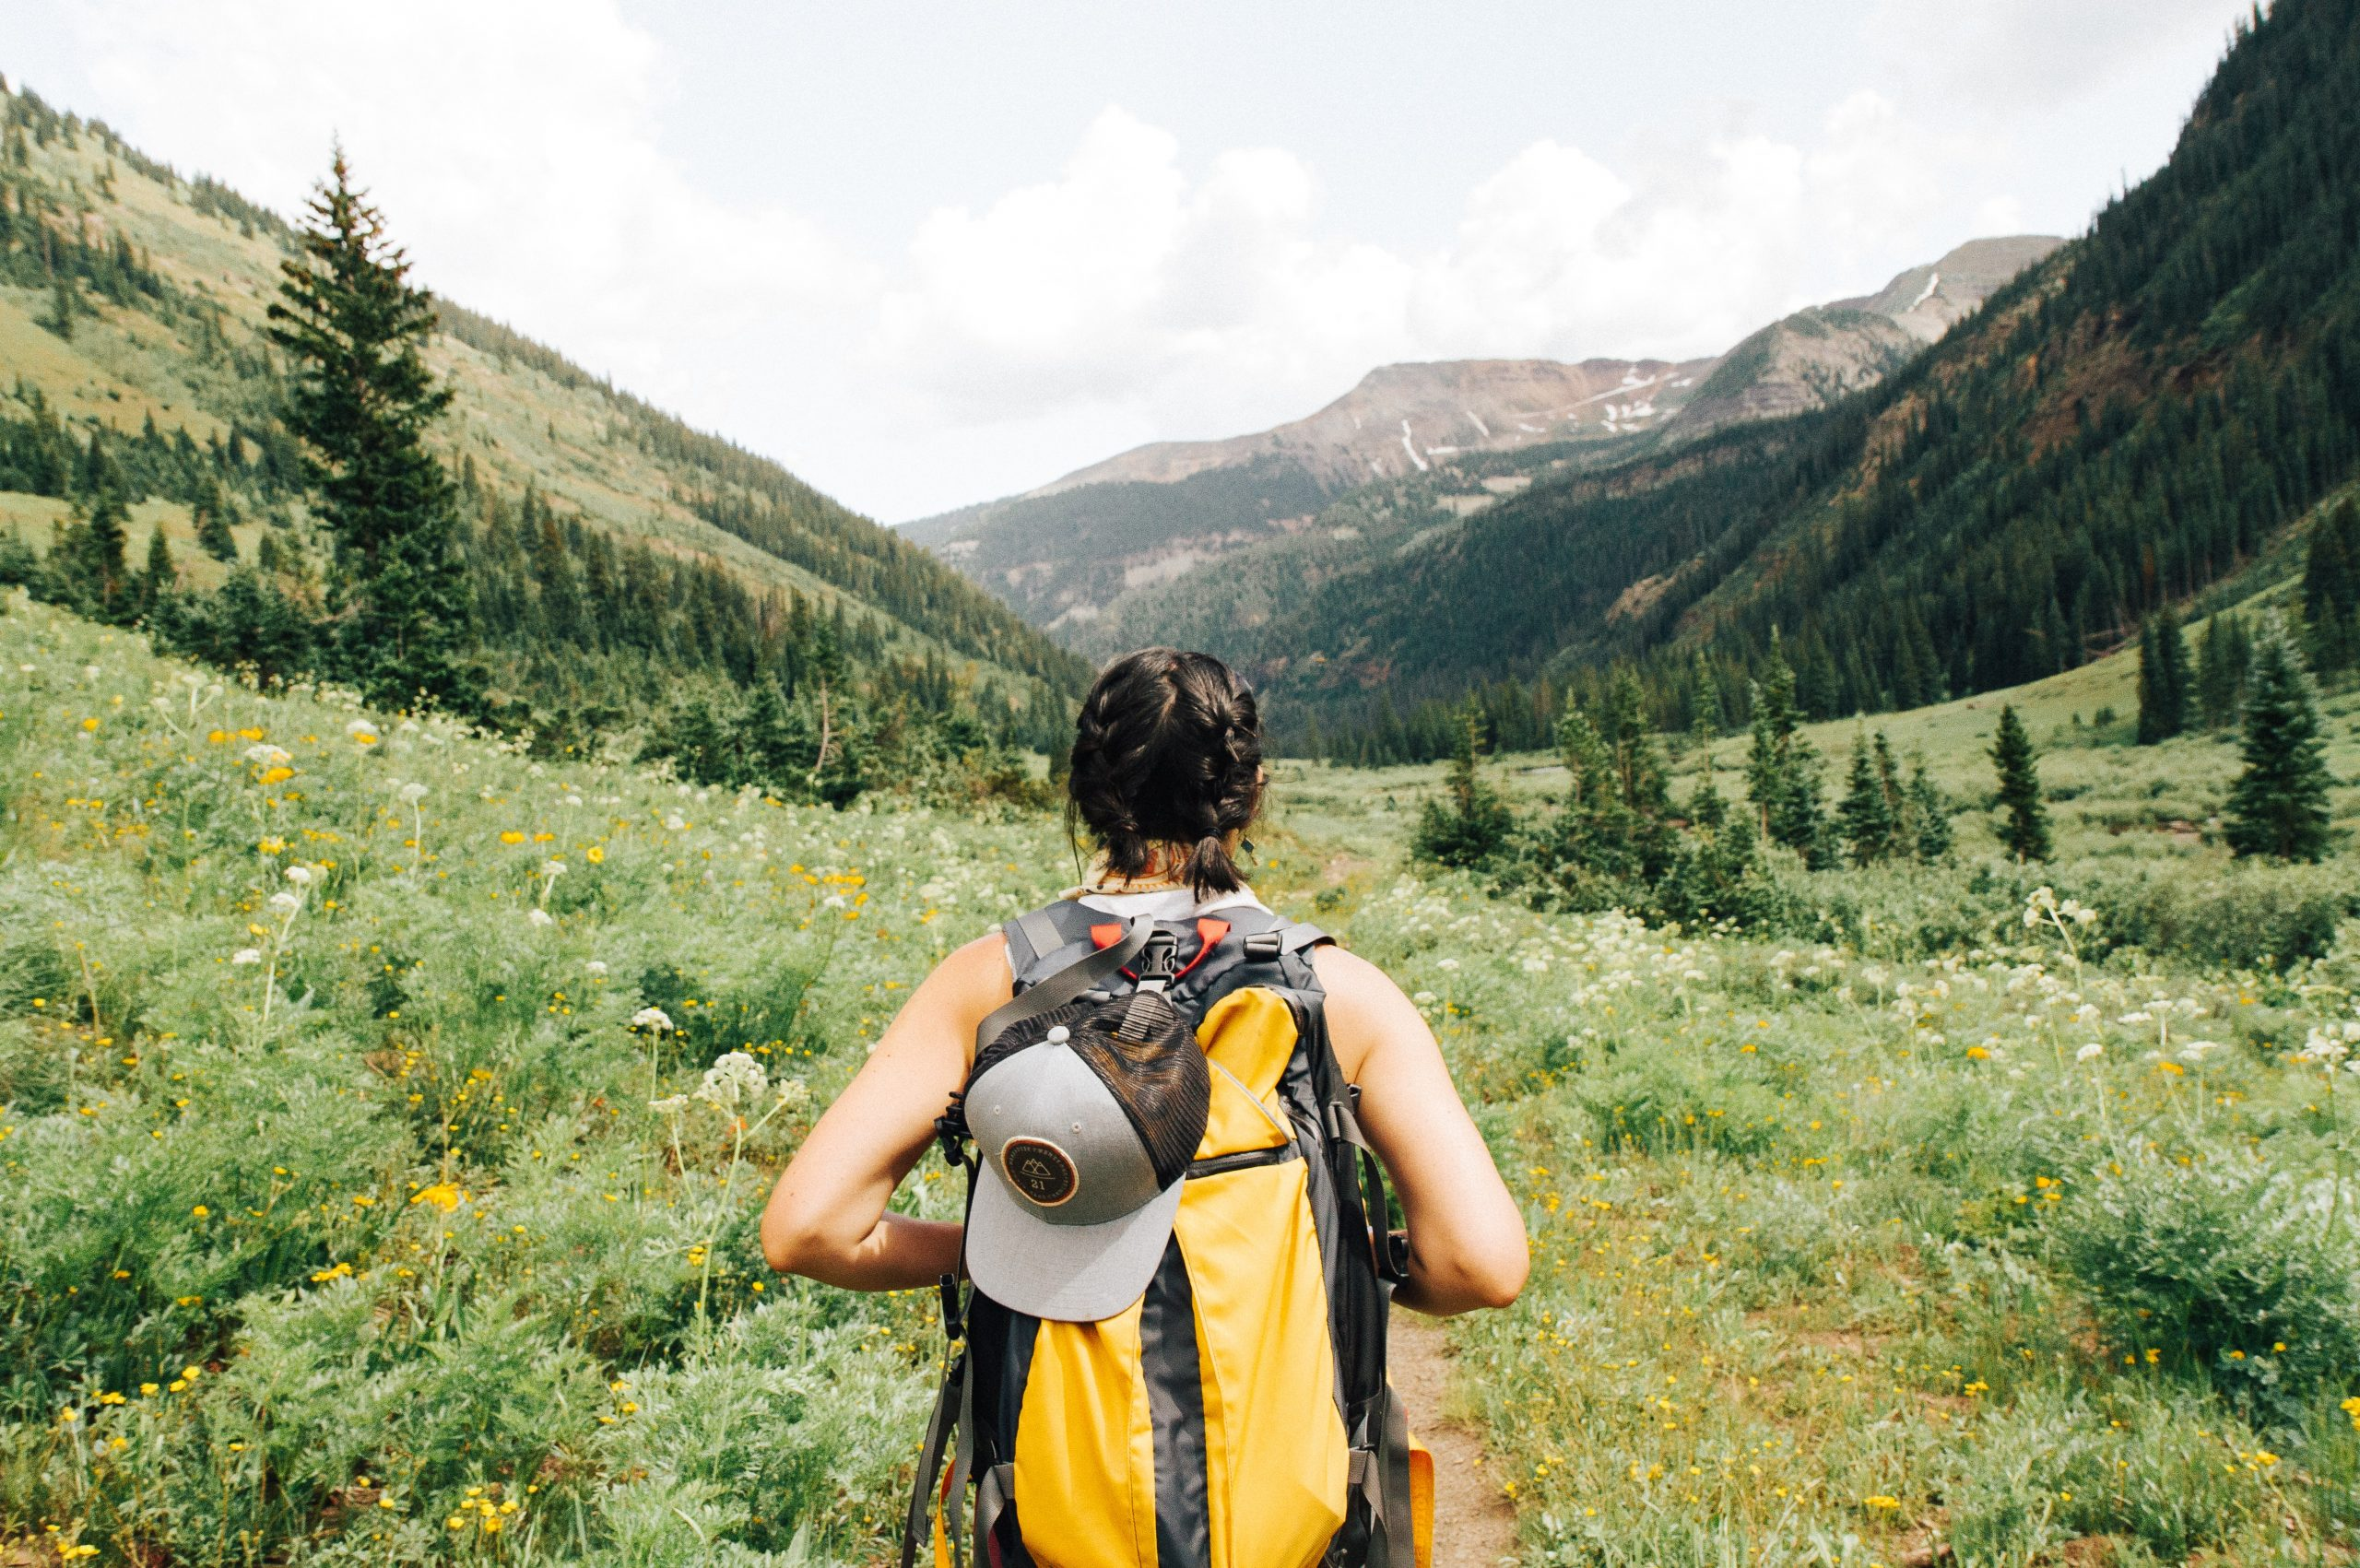 Hiking Trails and Snacks to take on them